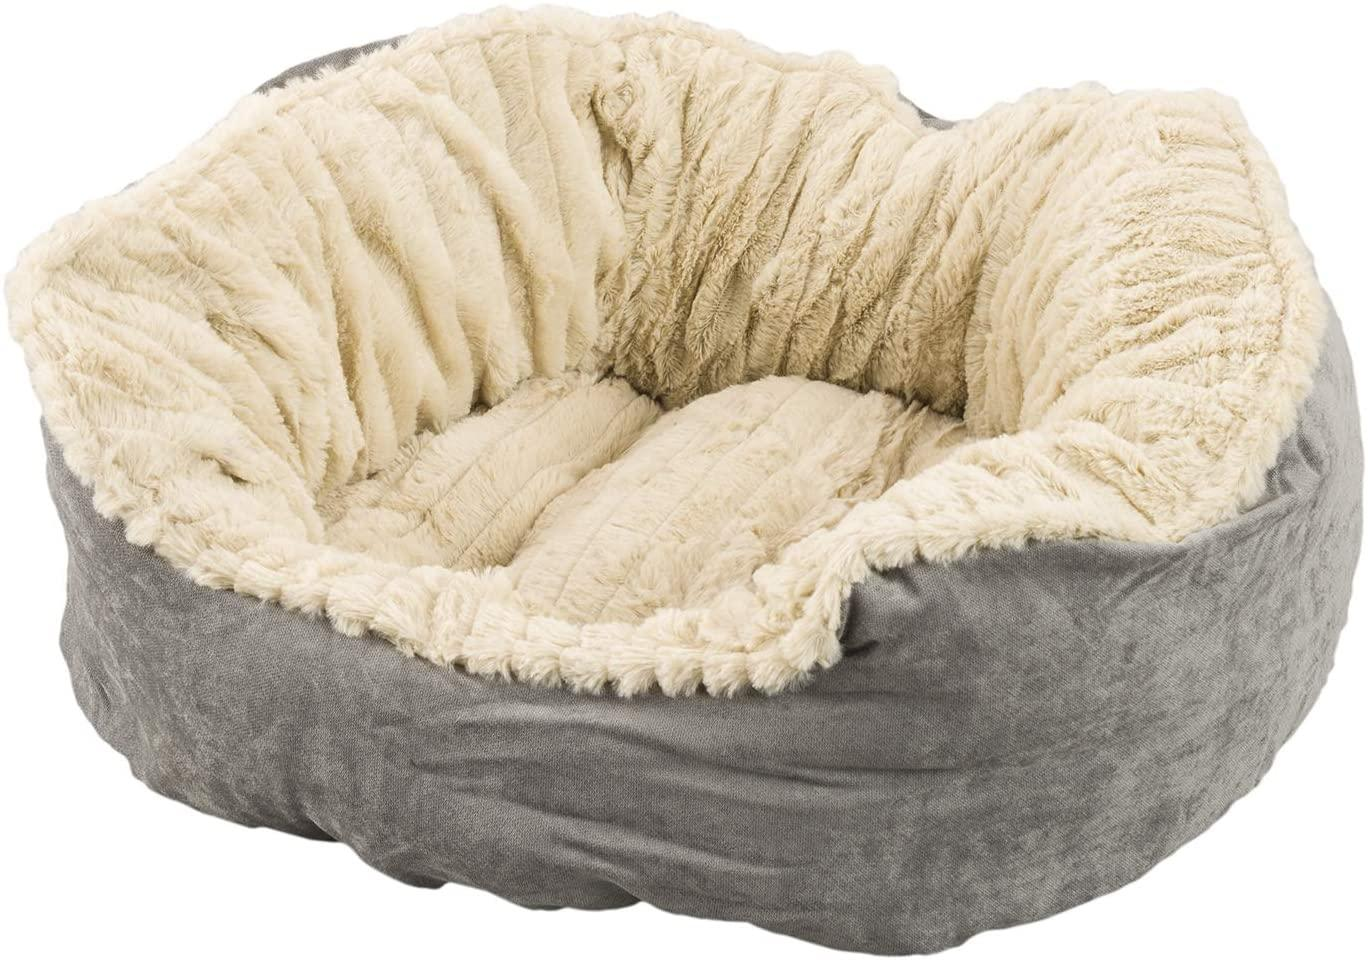 Ethical Pet Spot Sleep Zone Carved Plush Dog Bed, Gray, 21-in